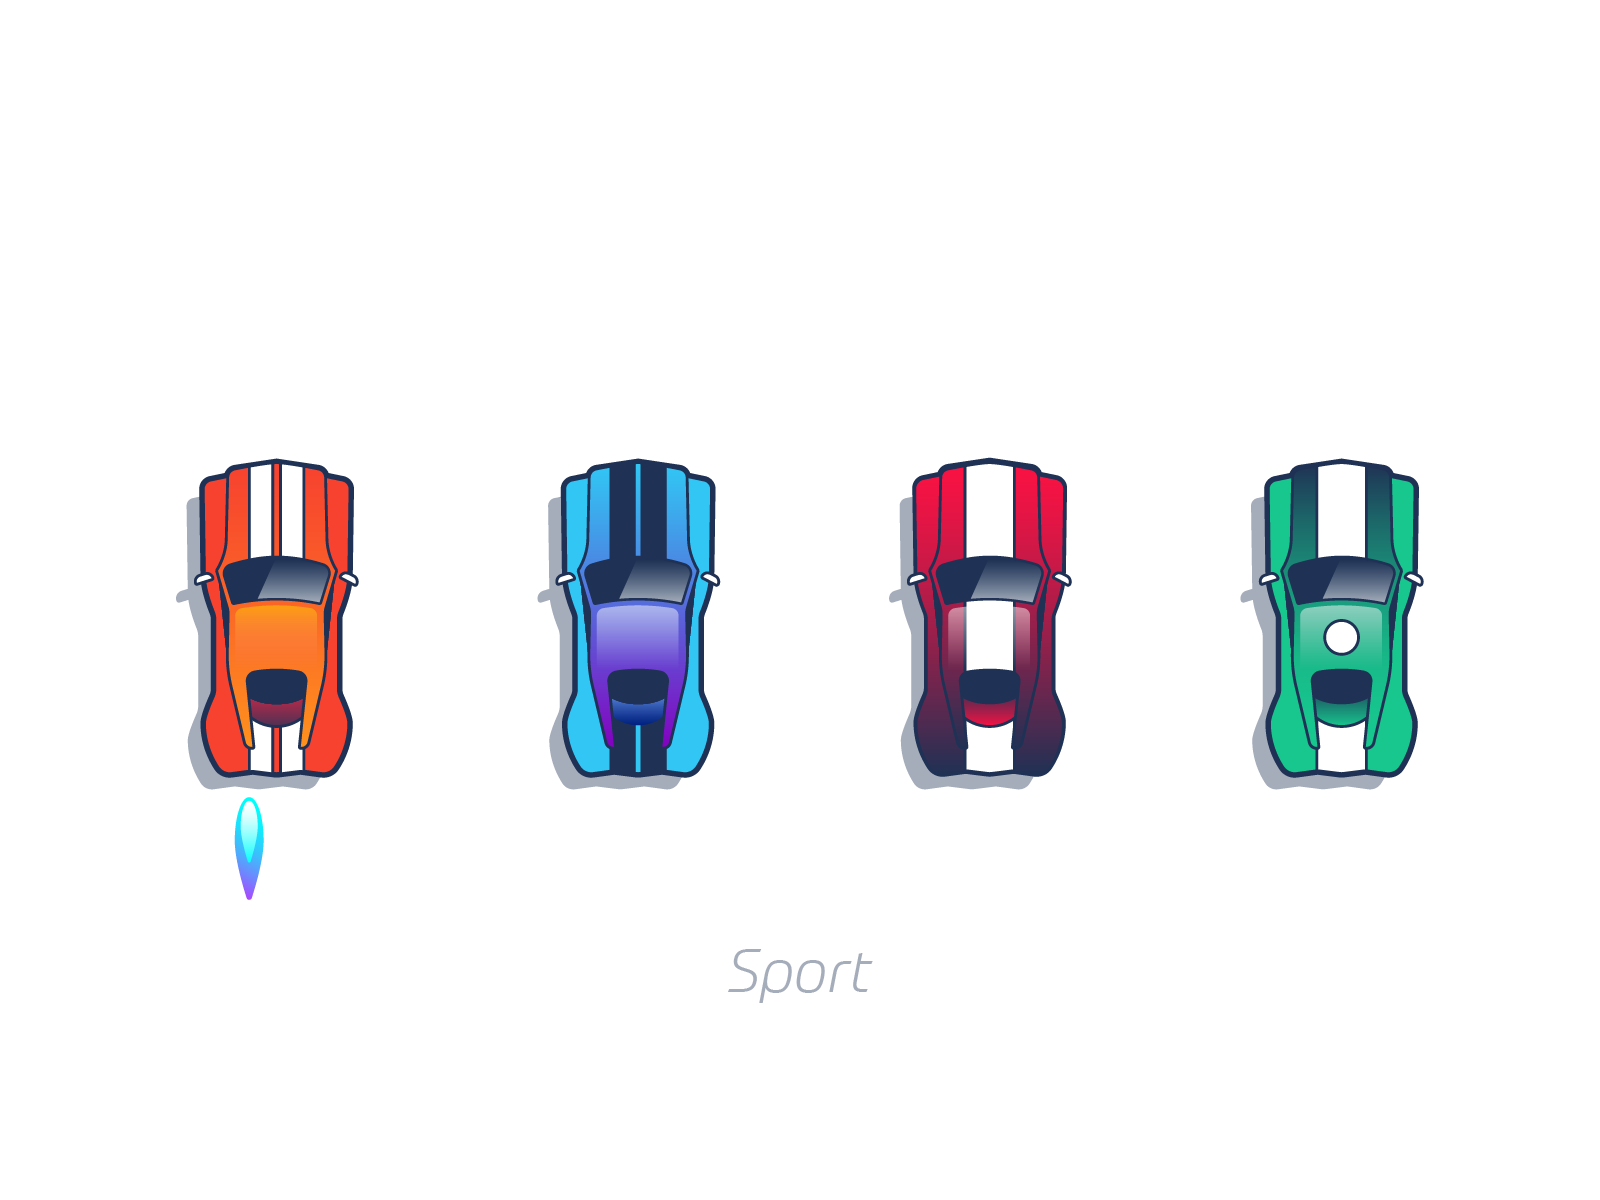 Sport cars mobile game design